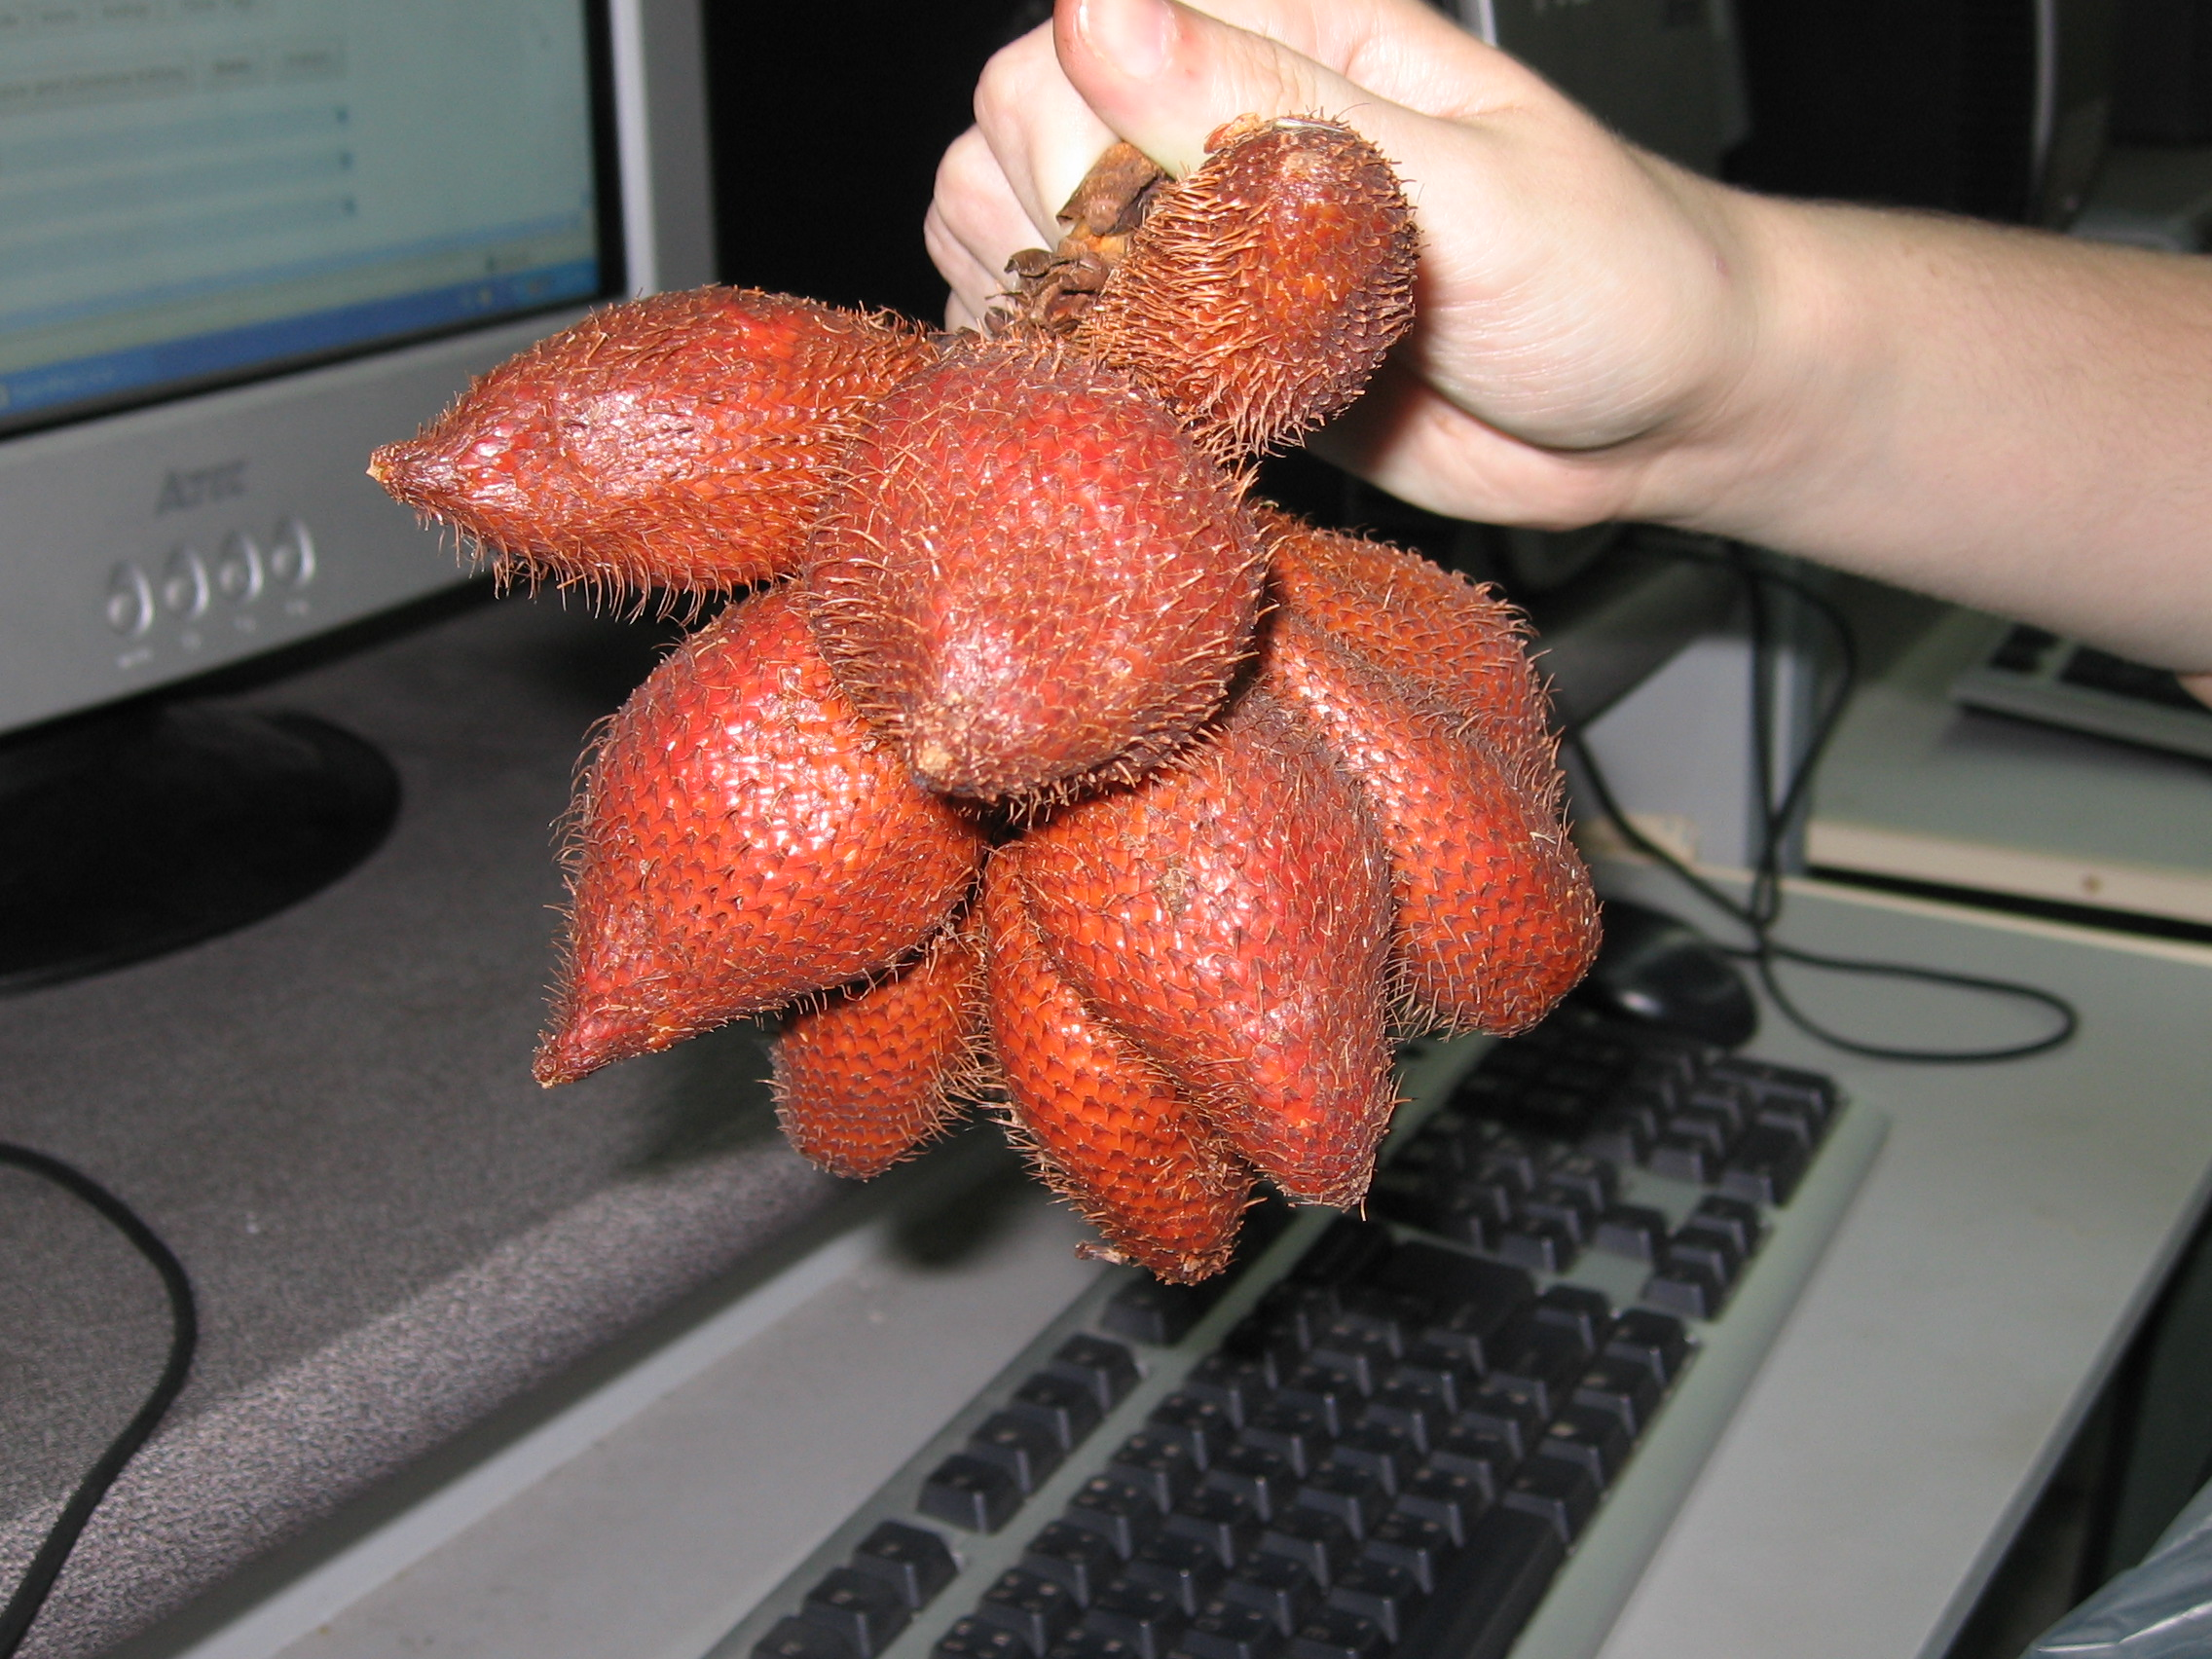 Weird fruit